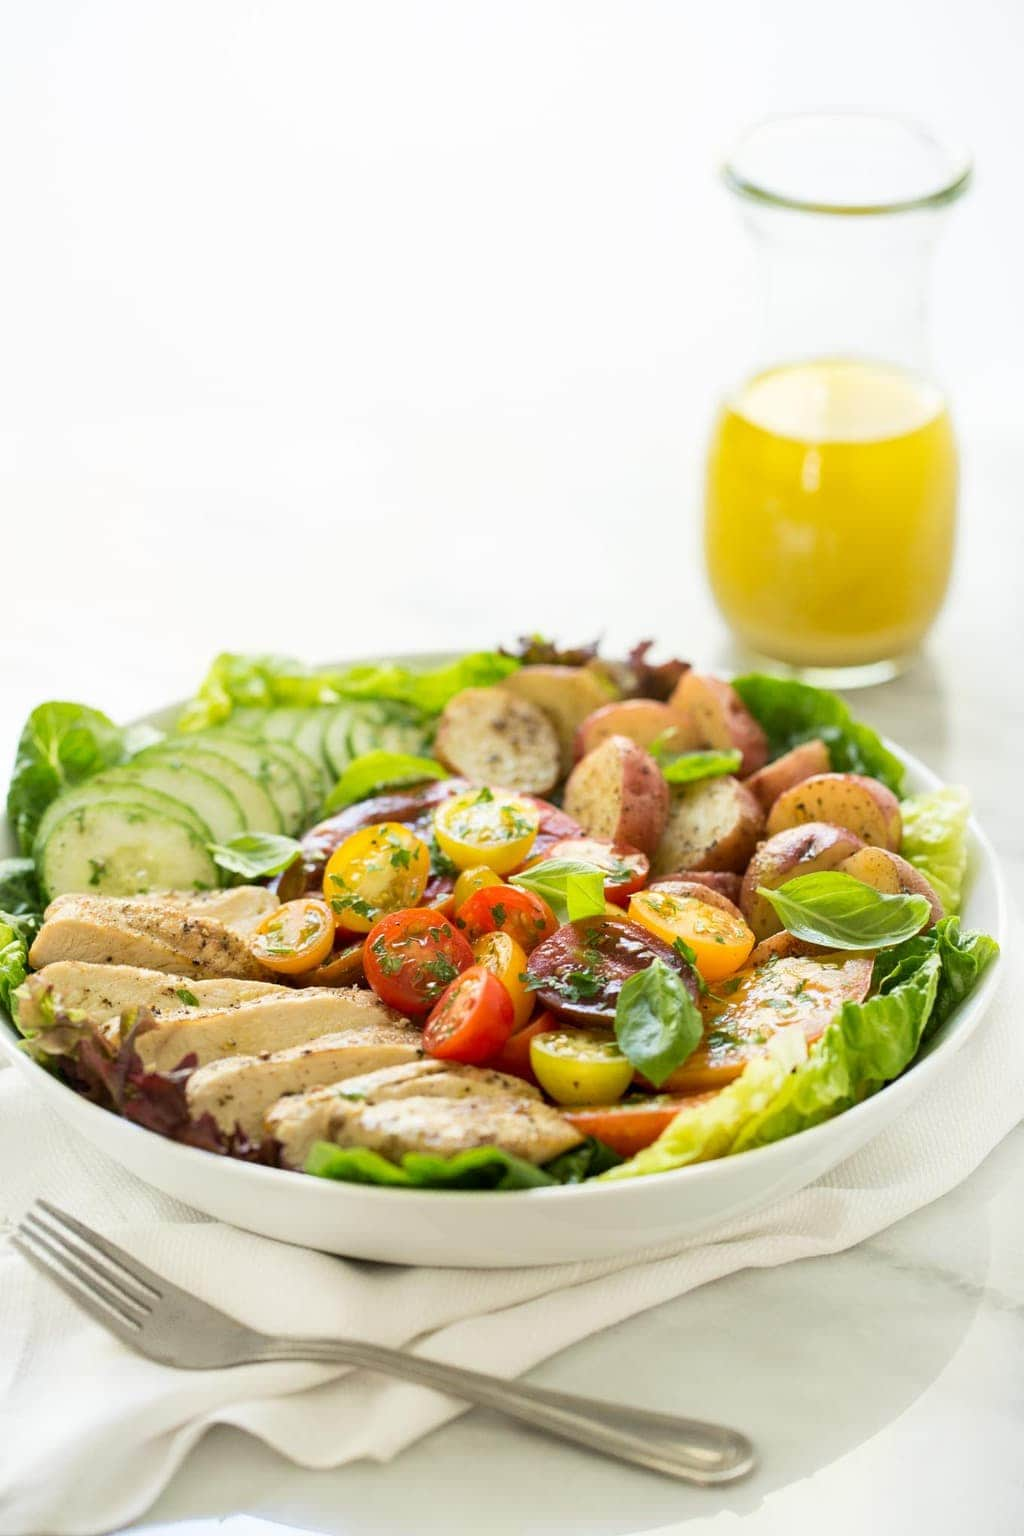 Vertical image of Grilled Chicken with Tomato Cucumber Salad.